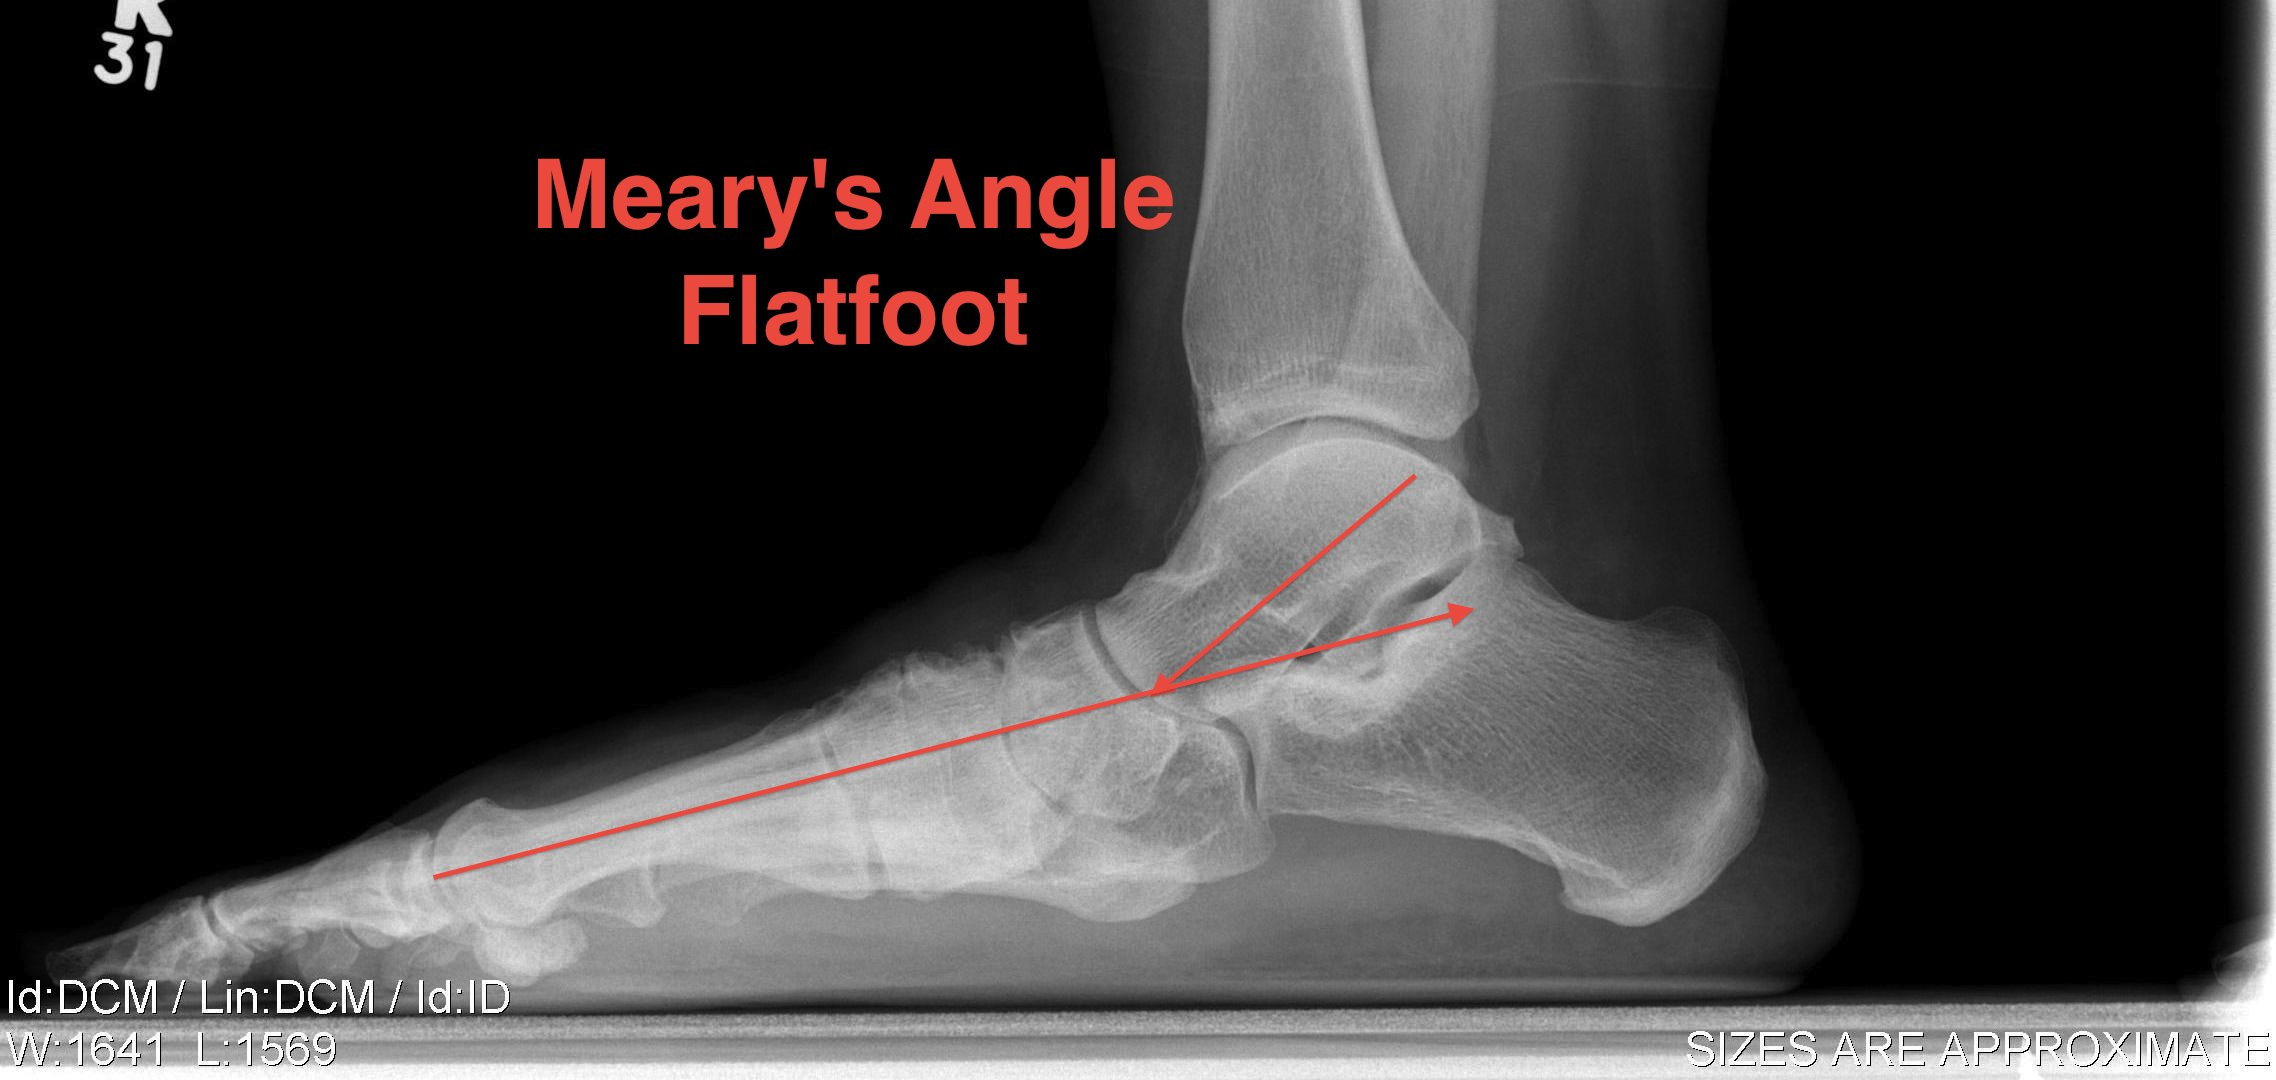 Planovalgus Foot Meary's Angle